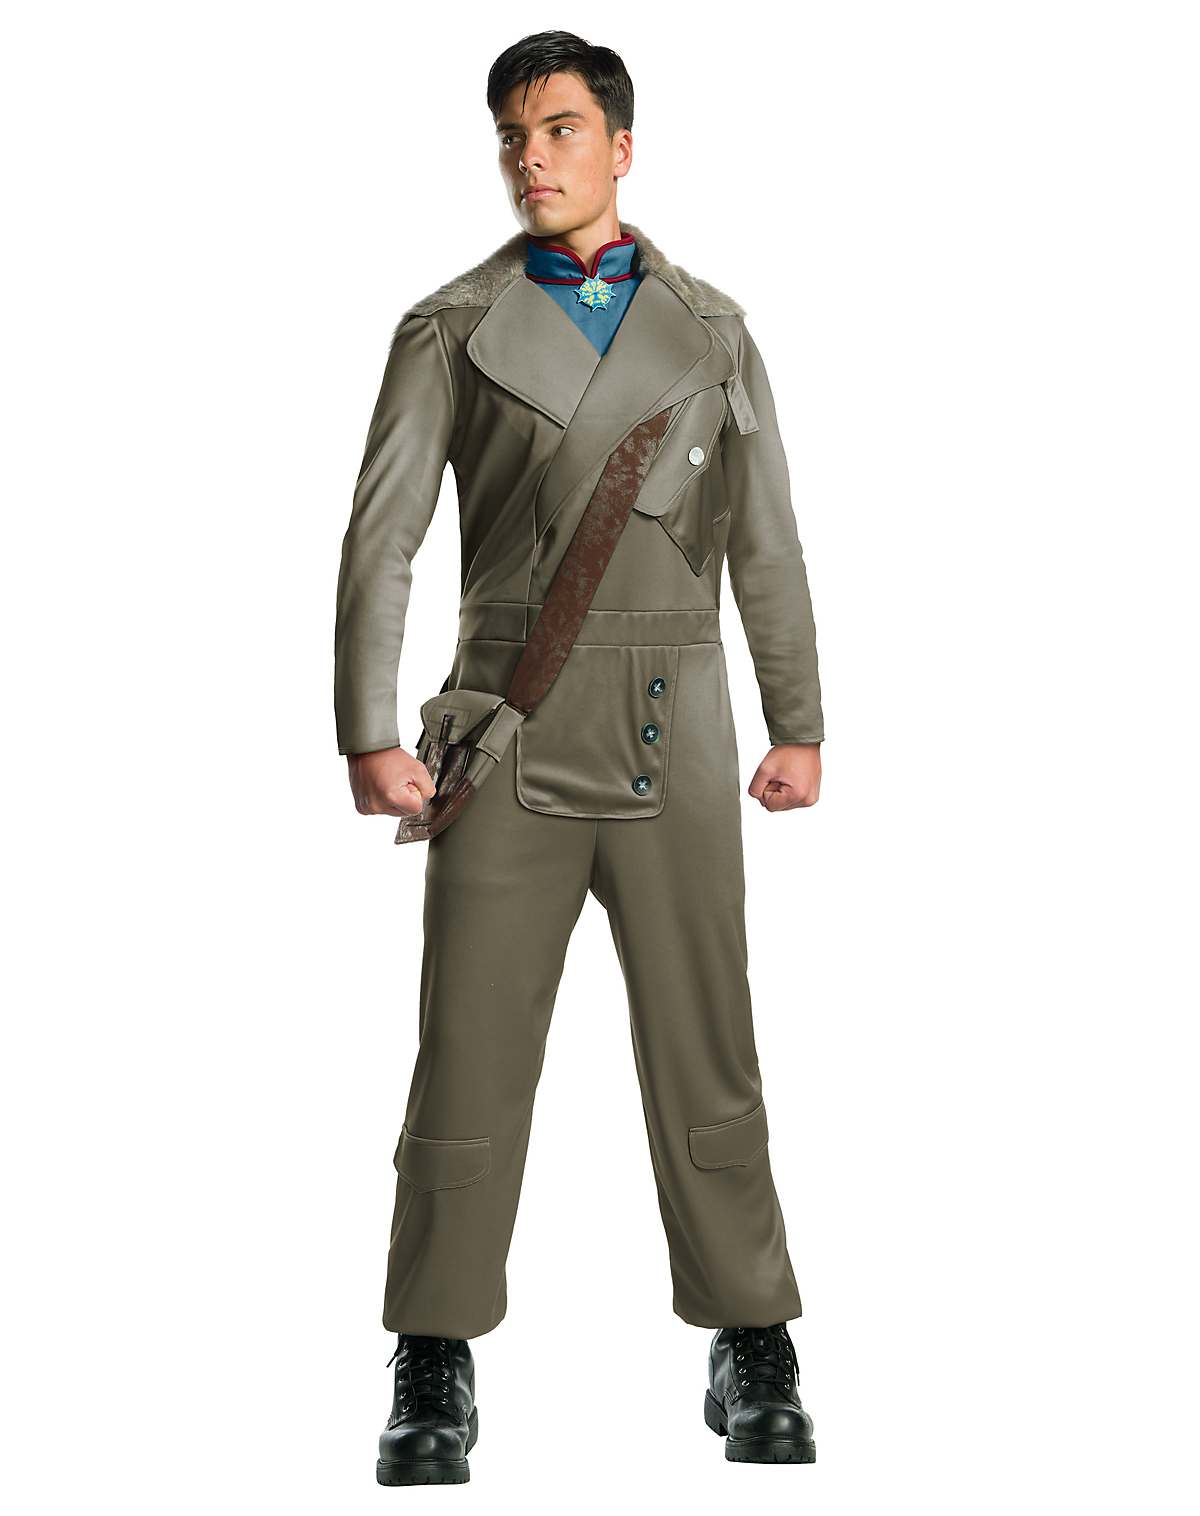 Steve Trevor Costumes for Halloween